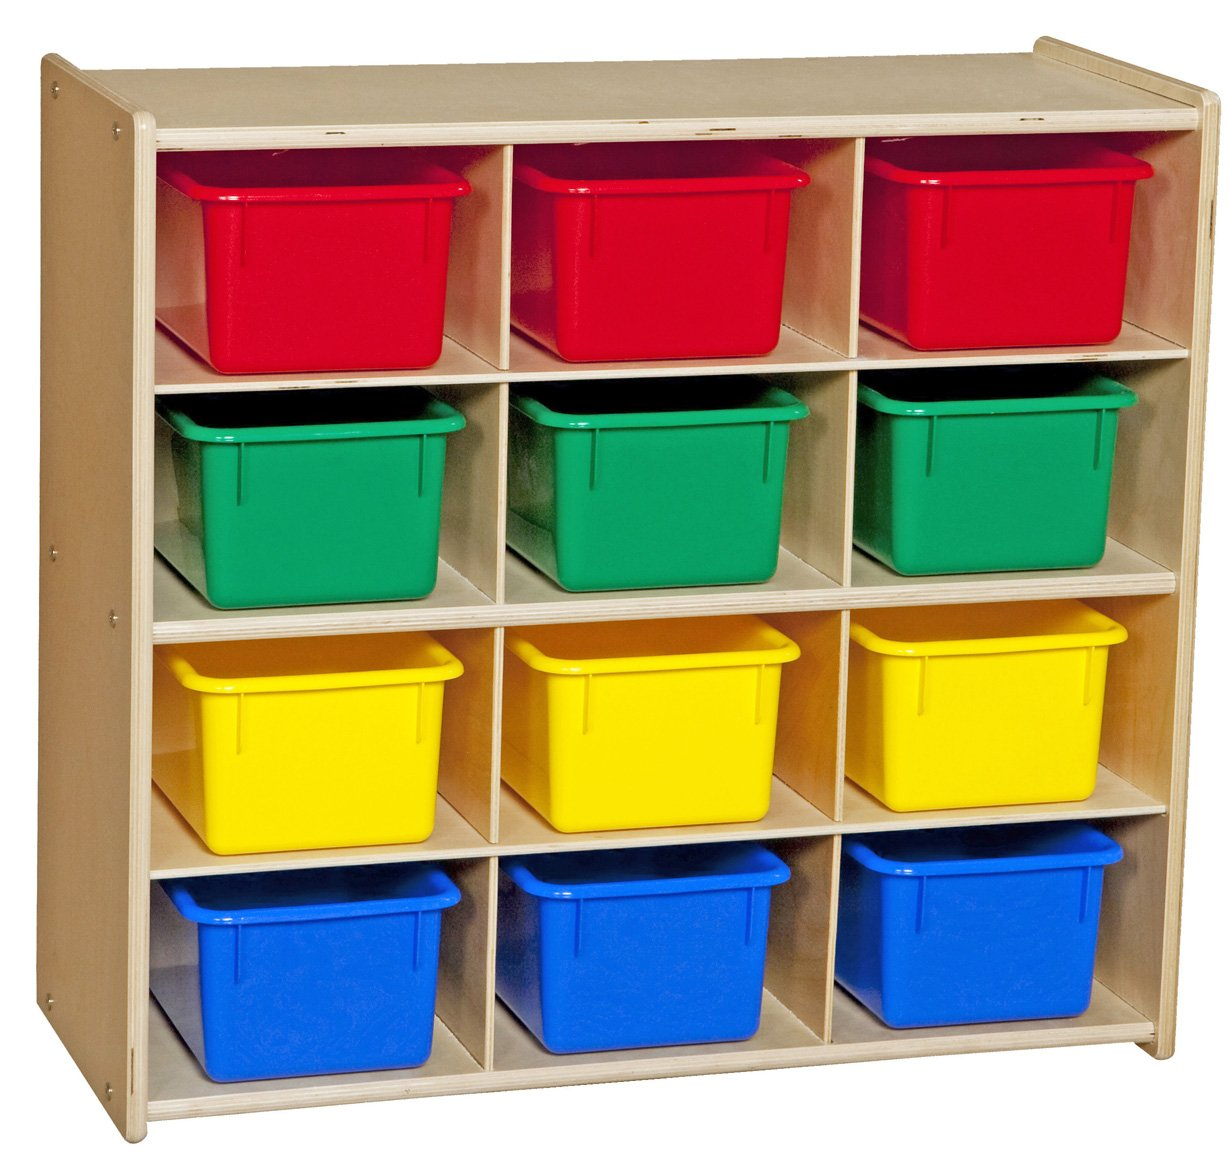 Contender 12 Compartment Toy Storage for Kids 67% OFF trend rank of fixed price Cabinet Montessor